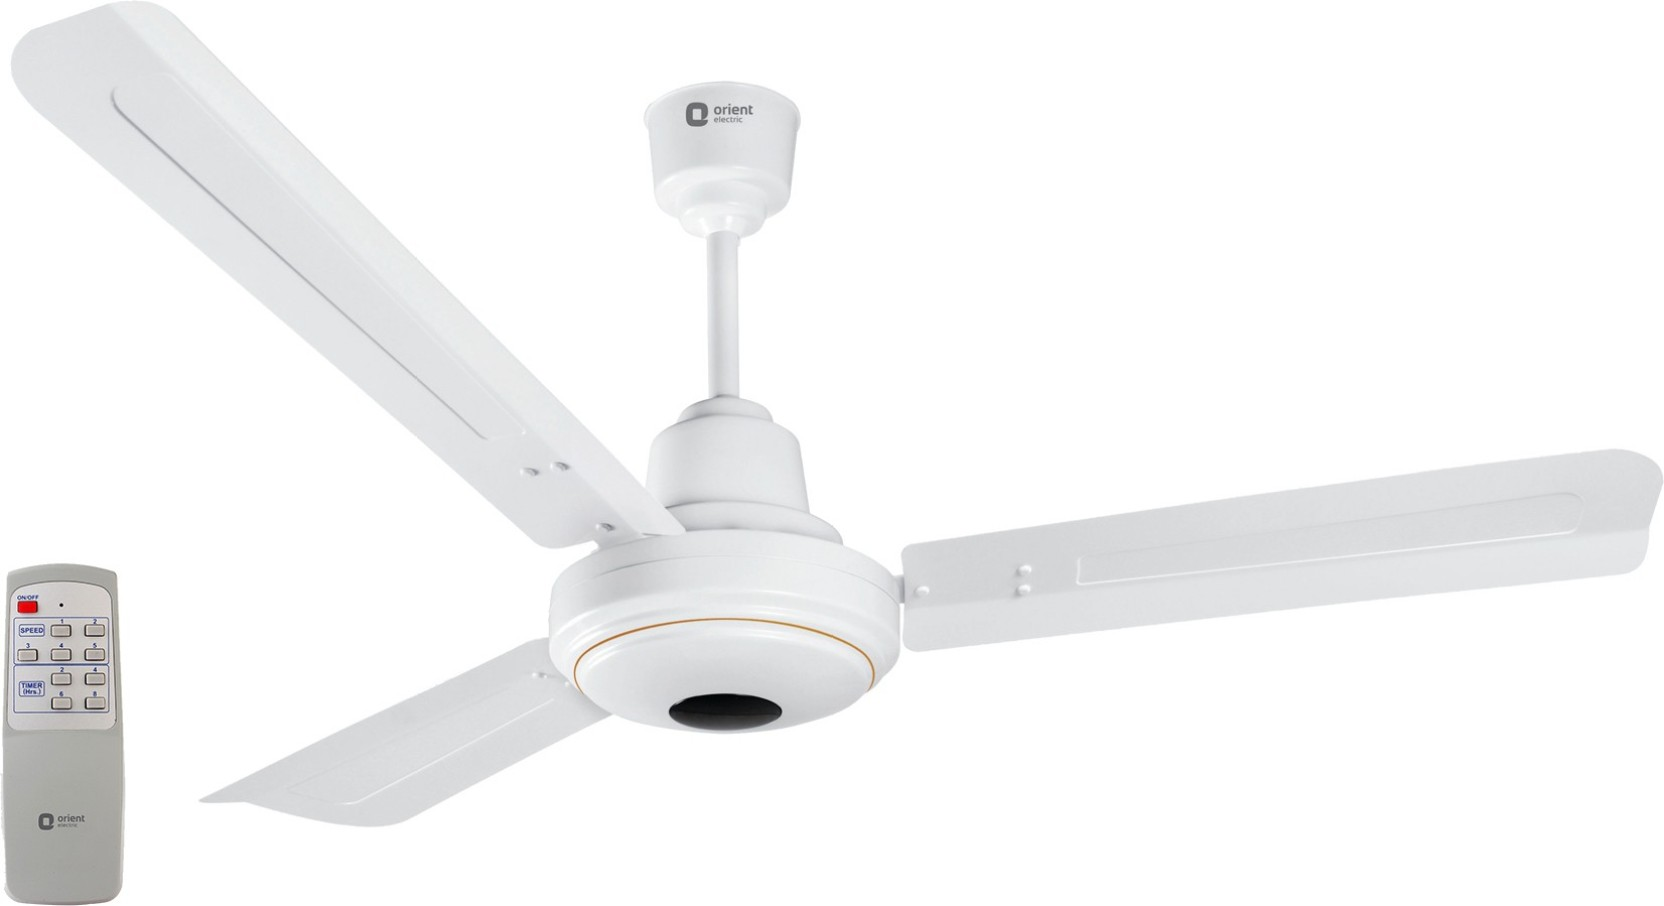 Orient Ecotech 3 Blade Ceiling Fan Price In India Buy Bldc Control Renesas Electronics Compare